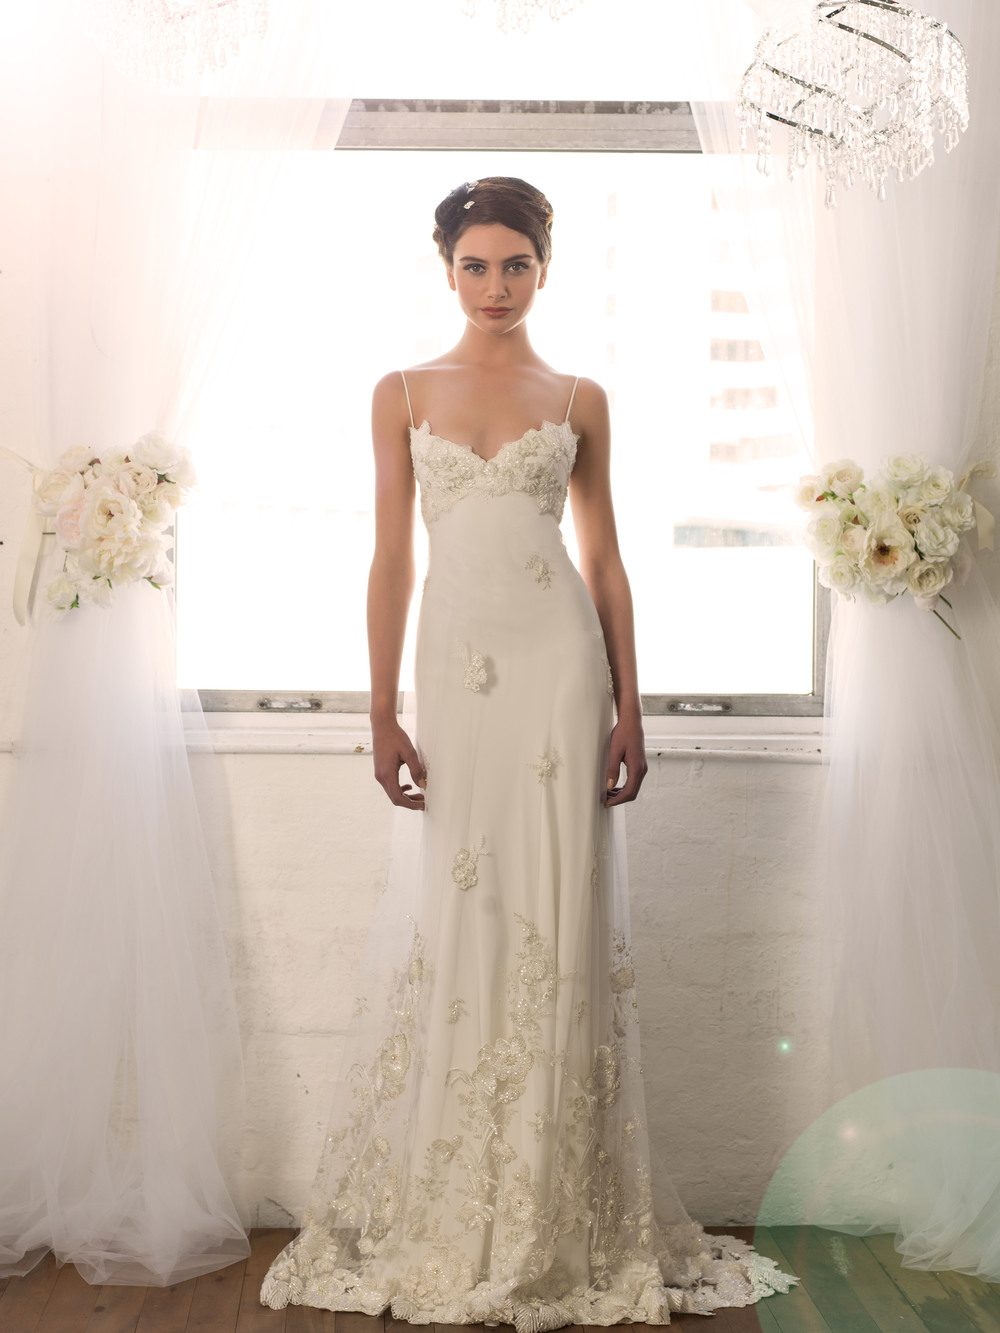 Sarah Janks Wedding Gown - Fall 2014 Collection {Daphne} : shimmering with a beaded and embroidered botanical motif, available with cap sleeves